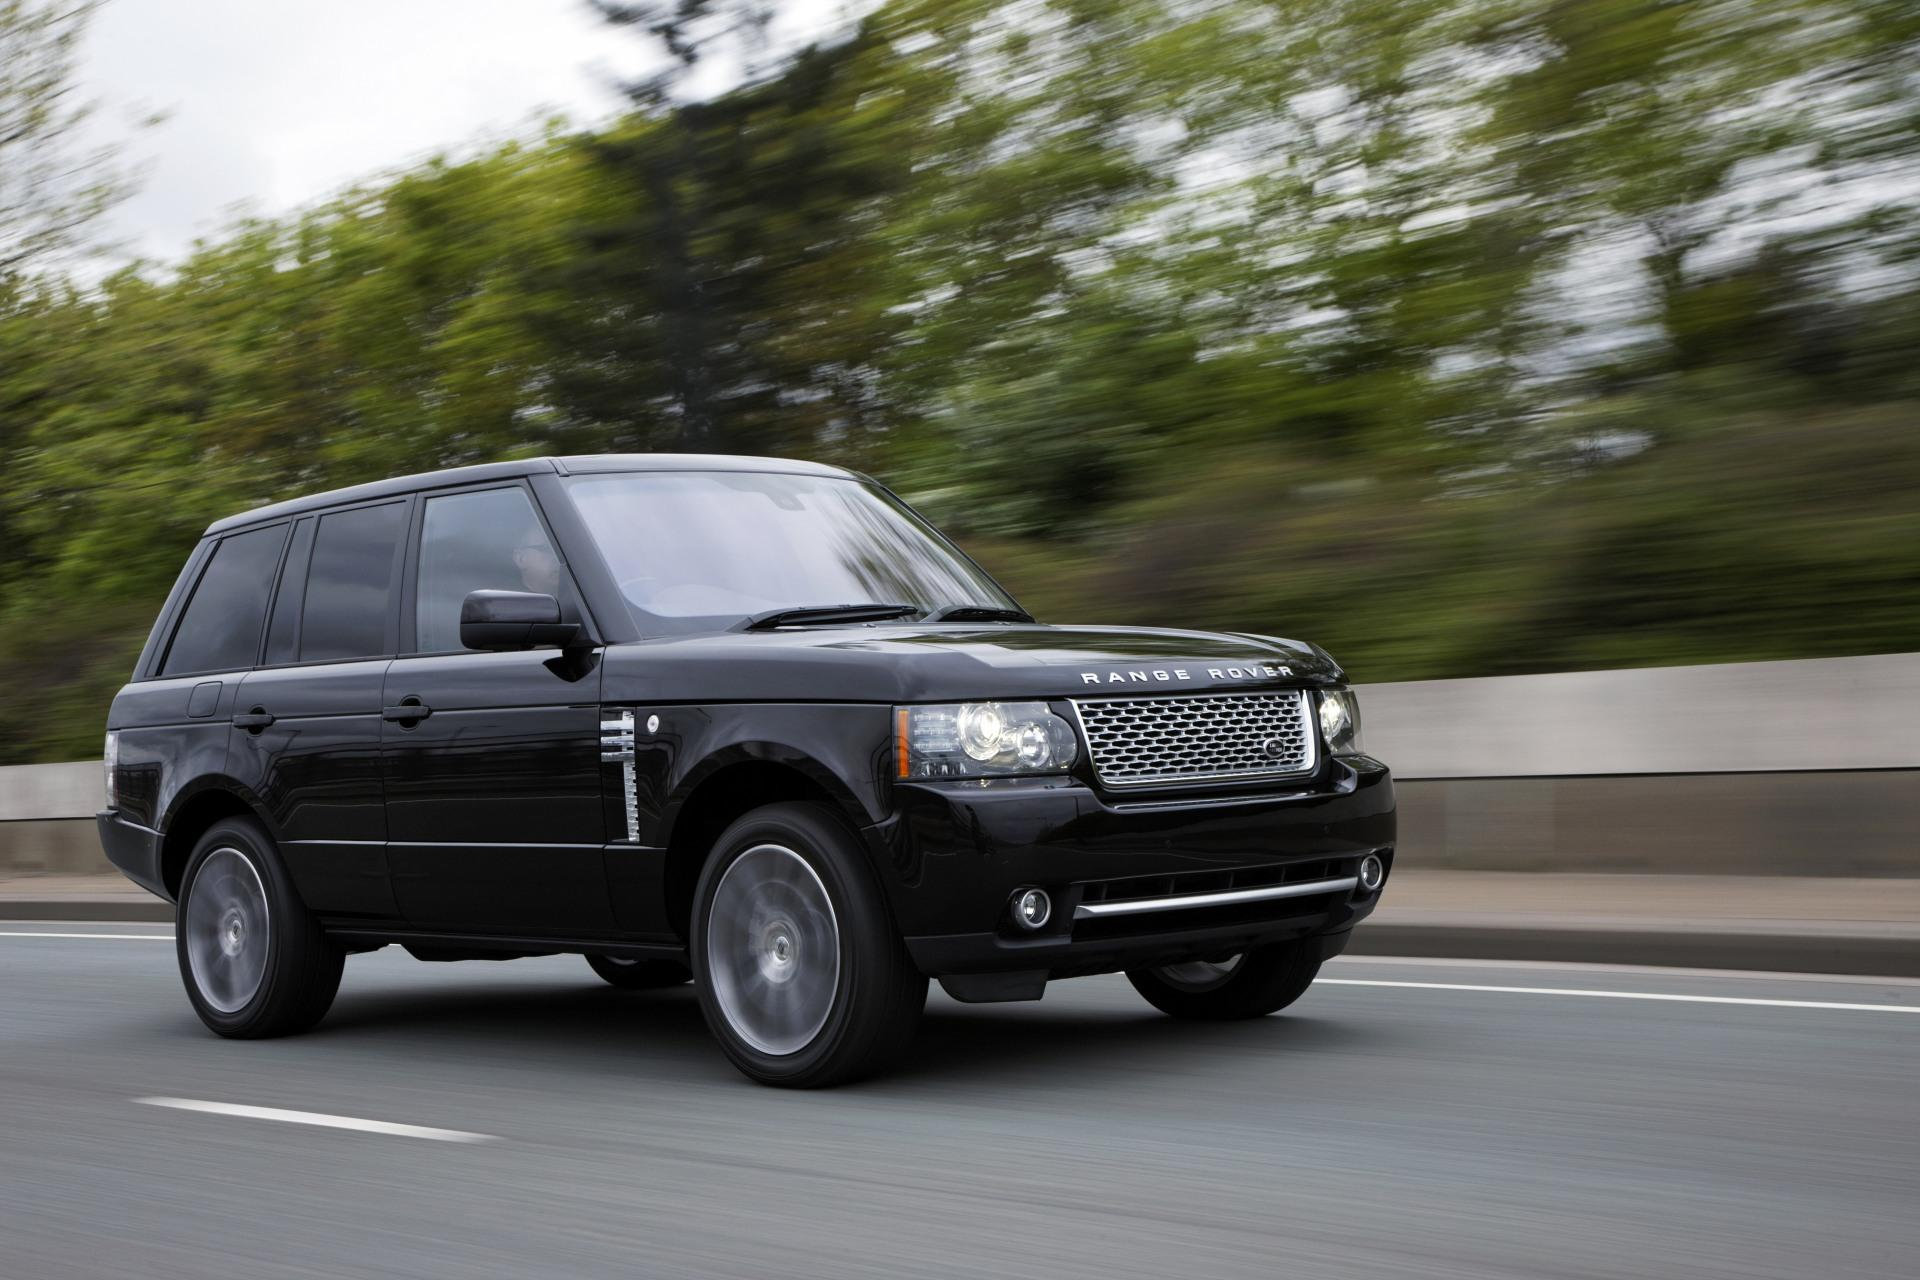 2011 Land Rover Range Rover Autobiography Black Edition News and ...